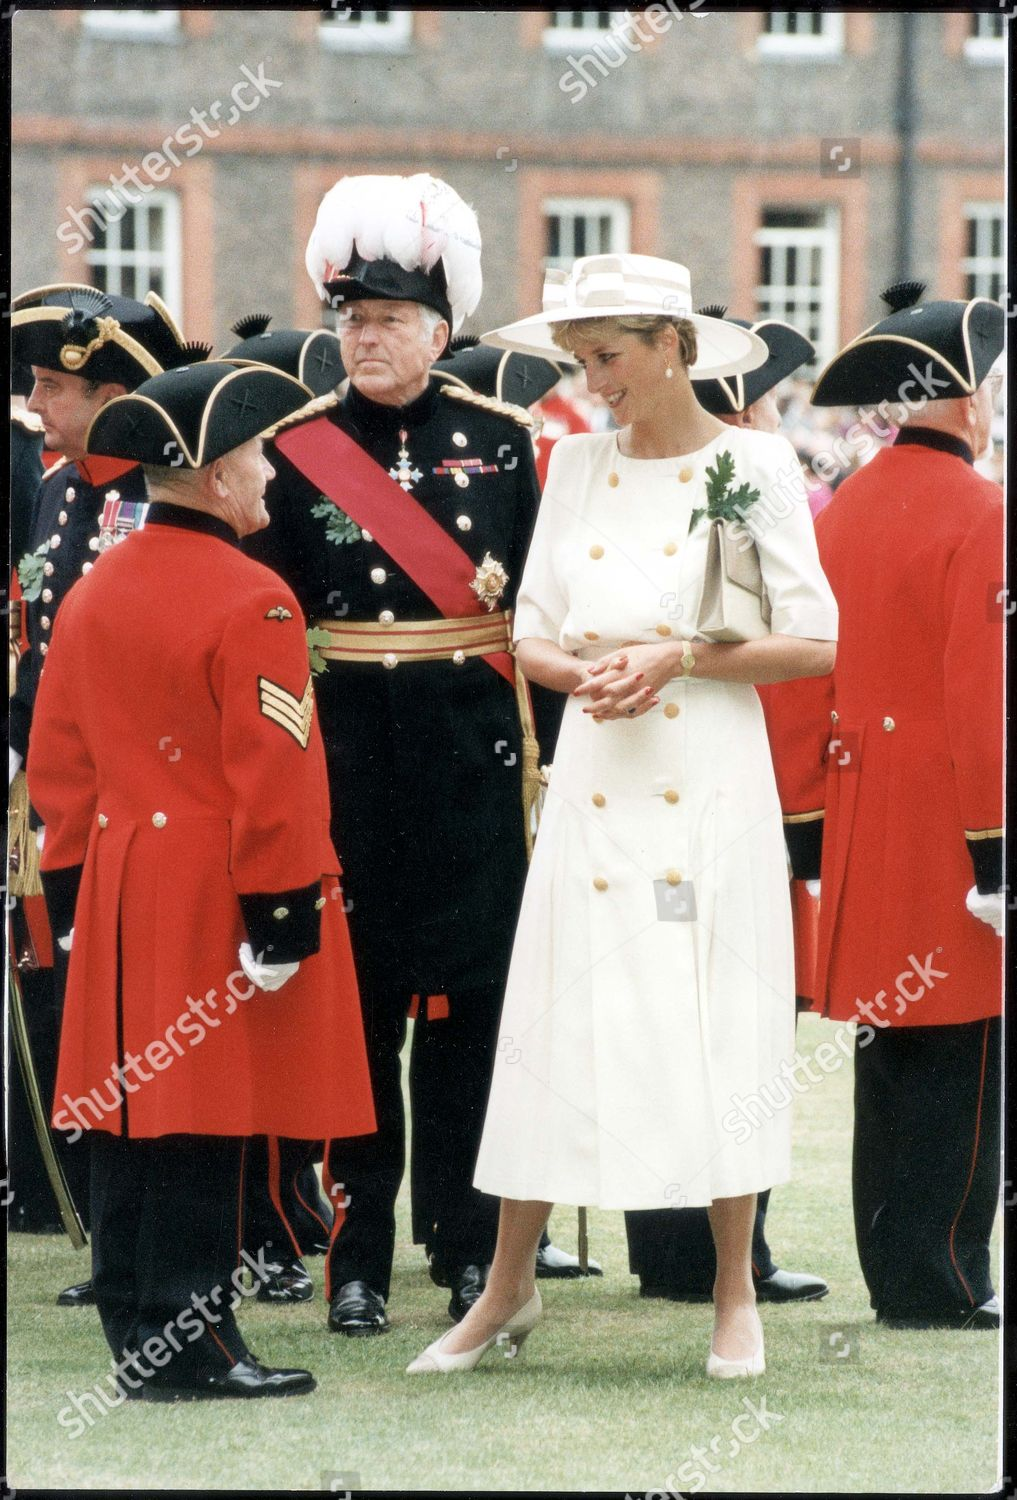 Diana Princess Of Wales (dead 8 1997) (alone) June1992. Princess Of Wales  With Pensioners On Founders Day Parade. Stock Image by Mike Forster for  editorial ... aa1eaa7a8